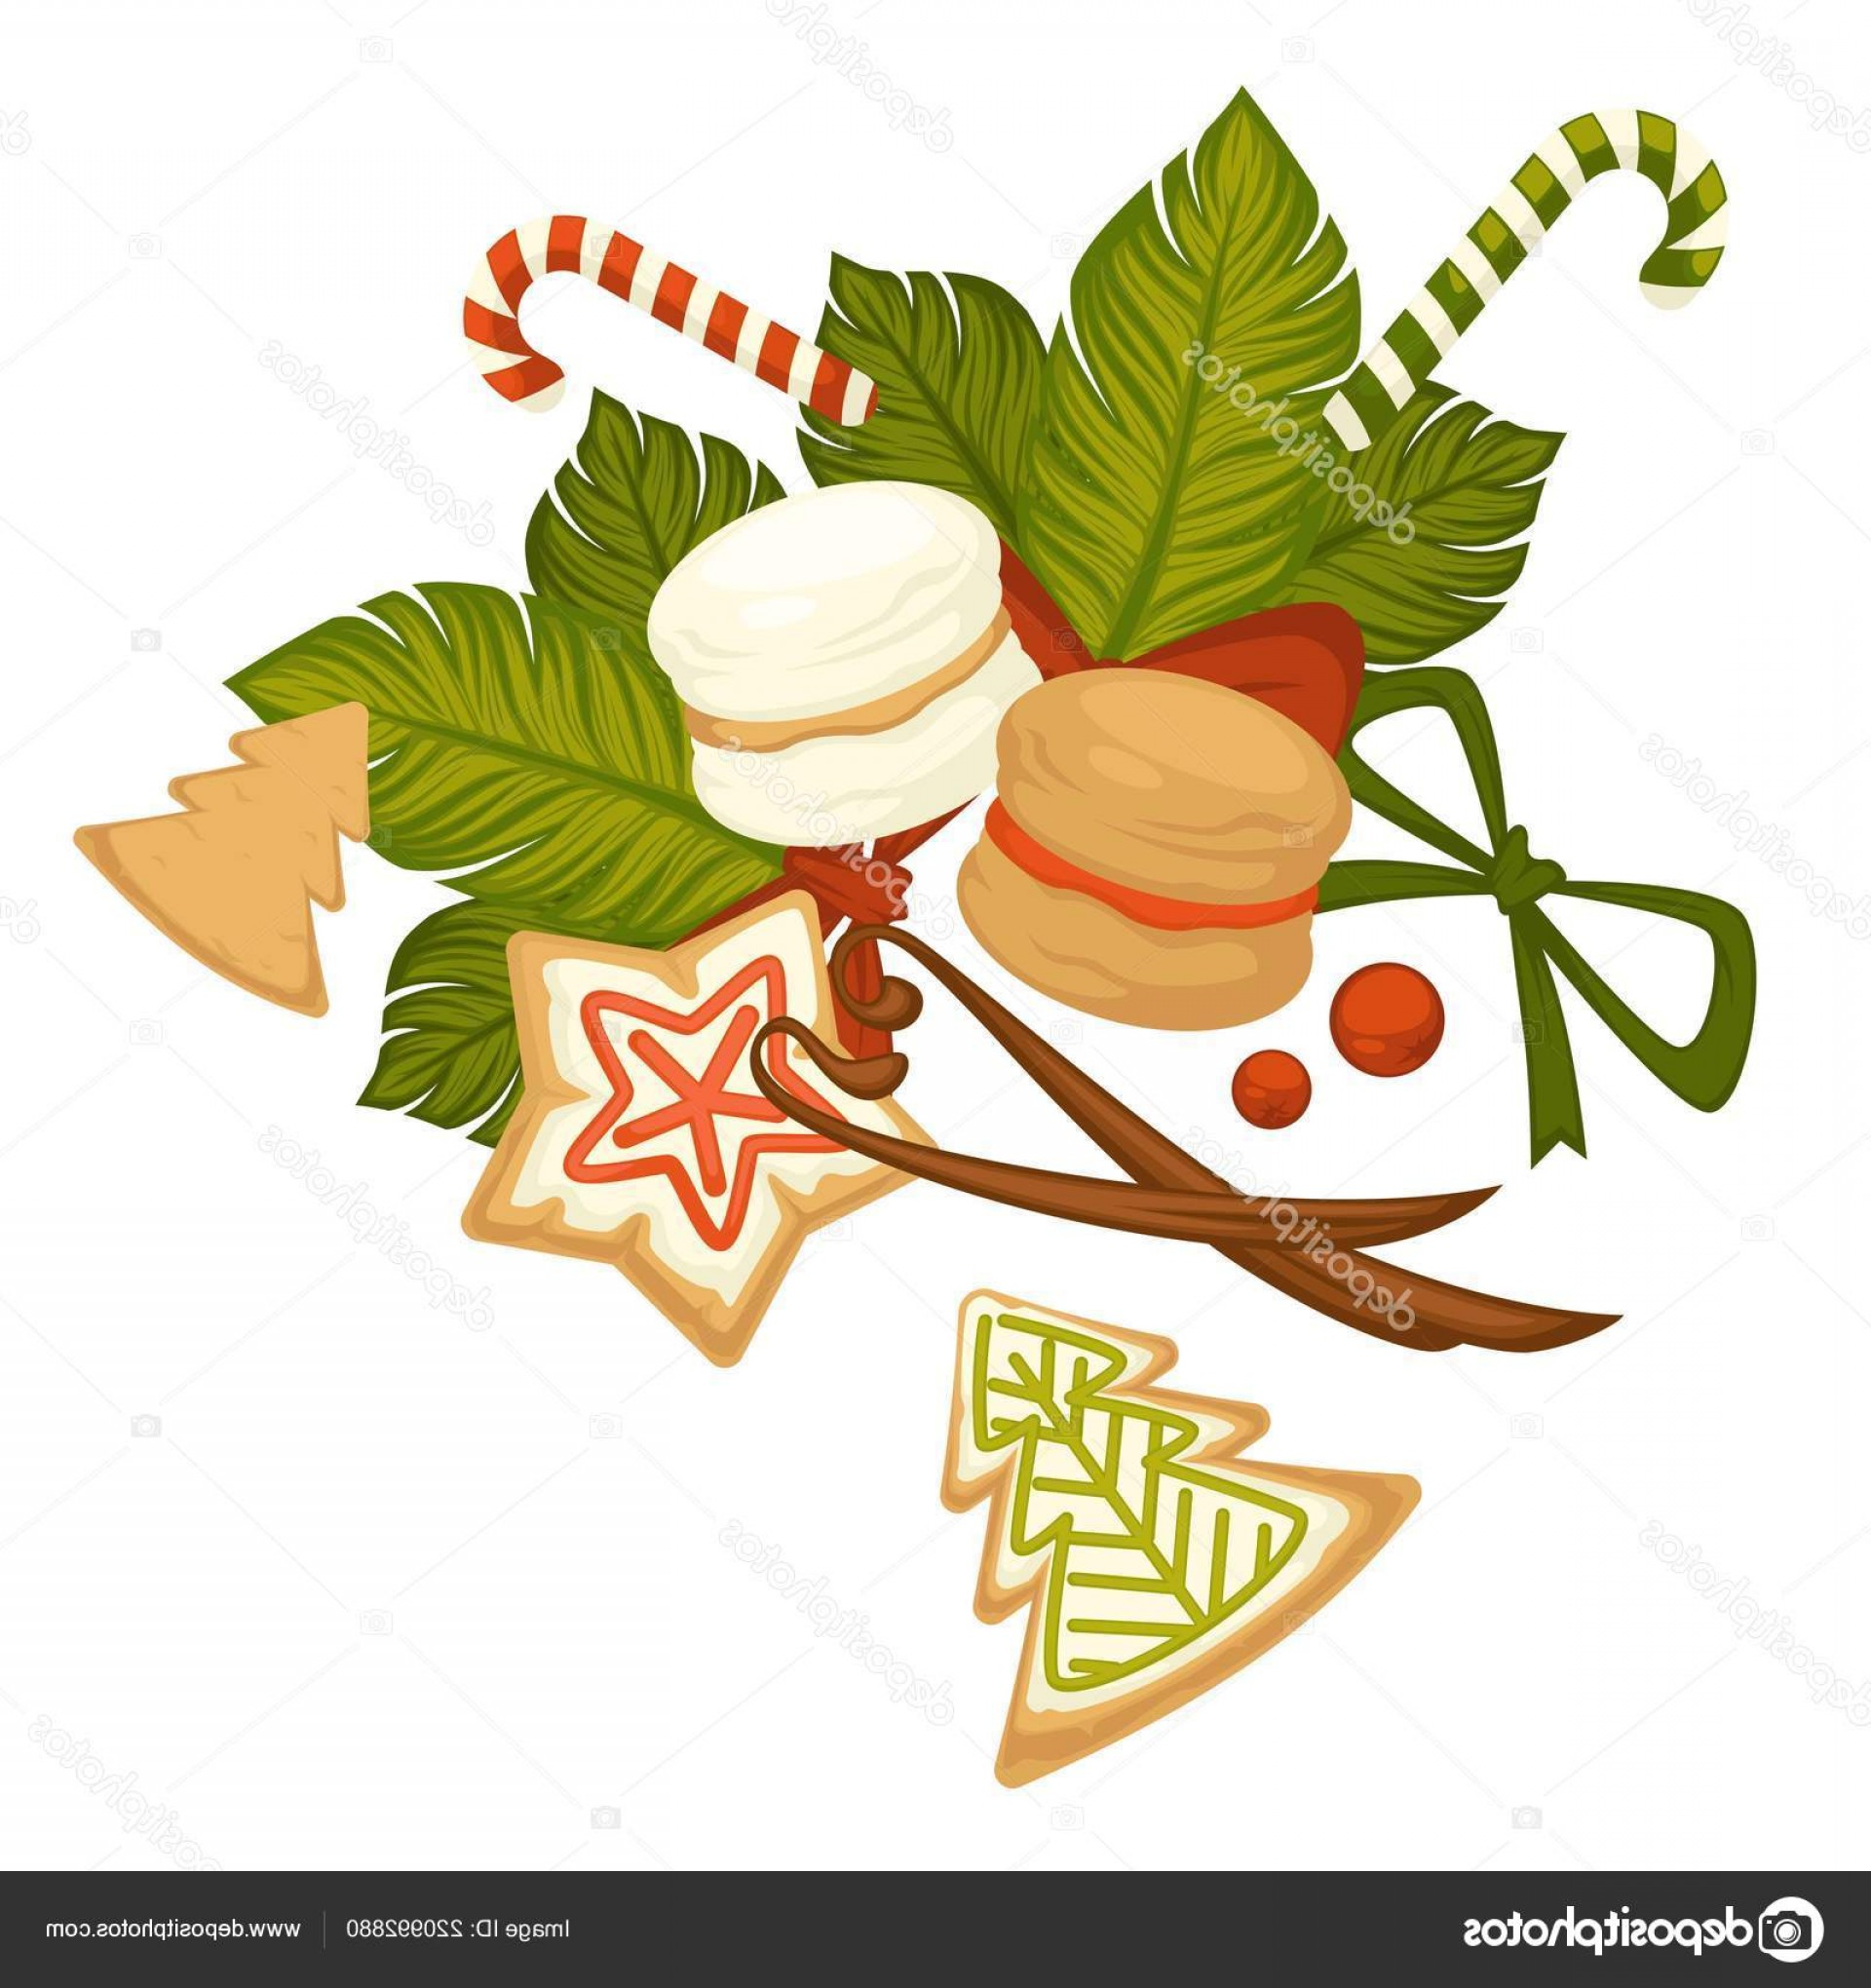 Vectors Holiday Baking: Stock Illustration Merry Christmas Winter Holiday Cookies